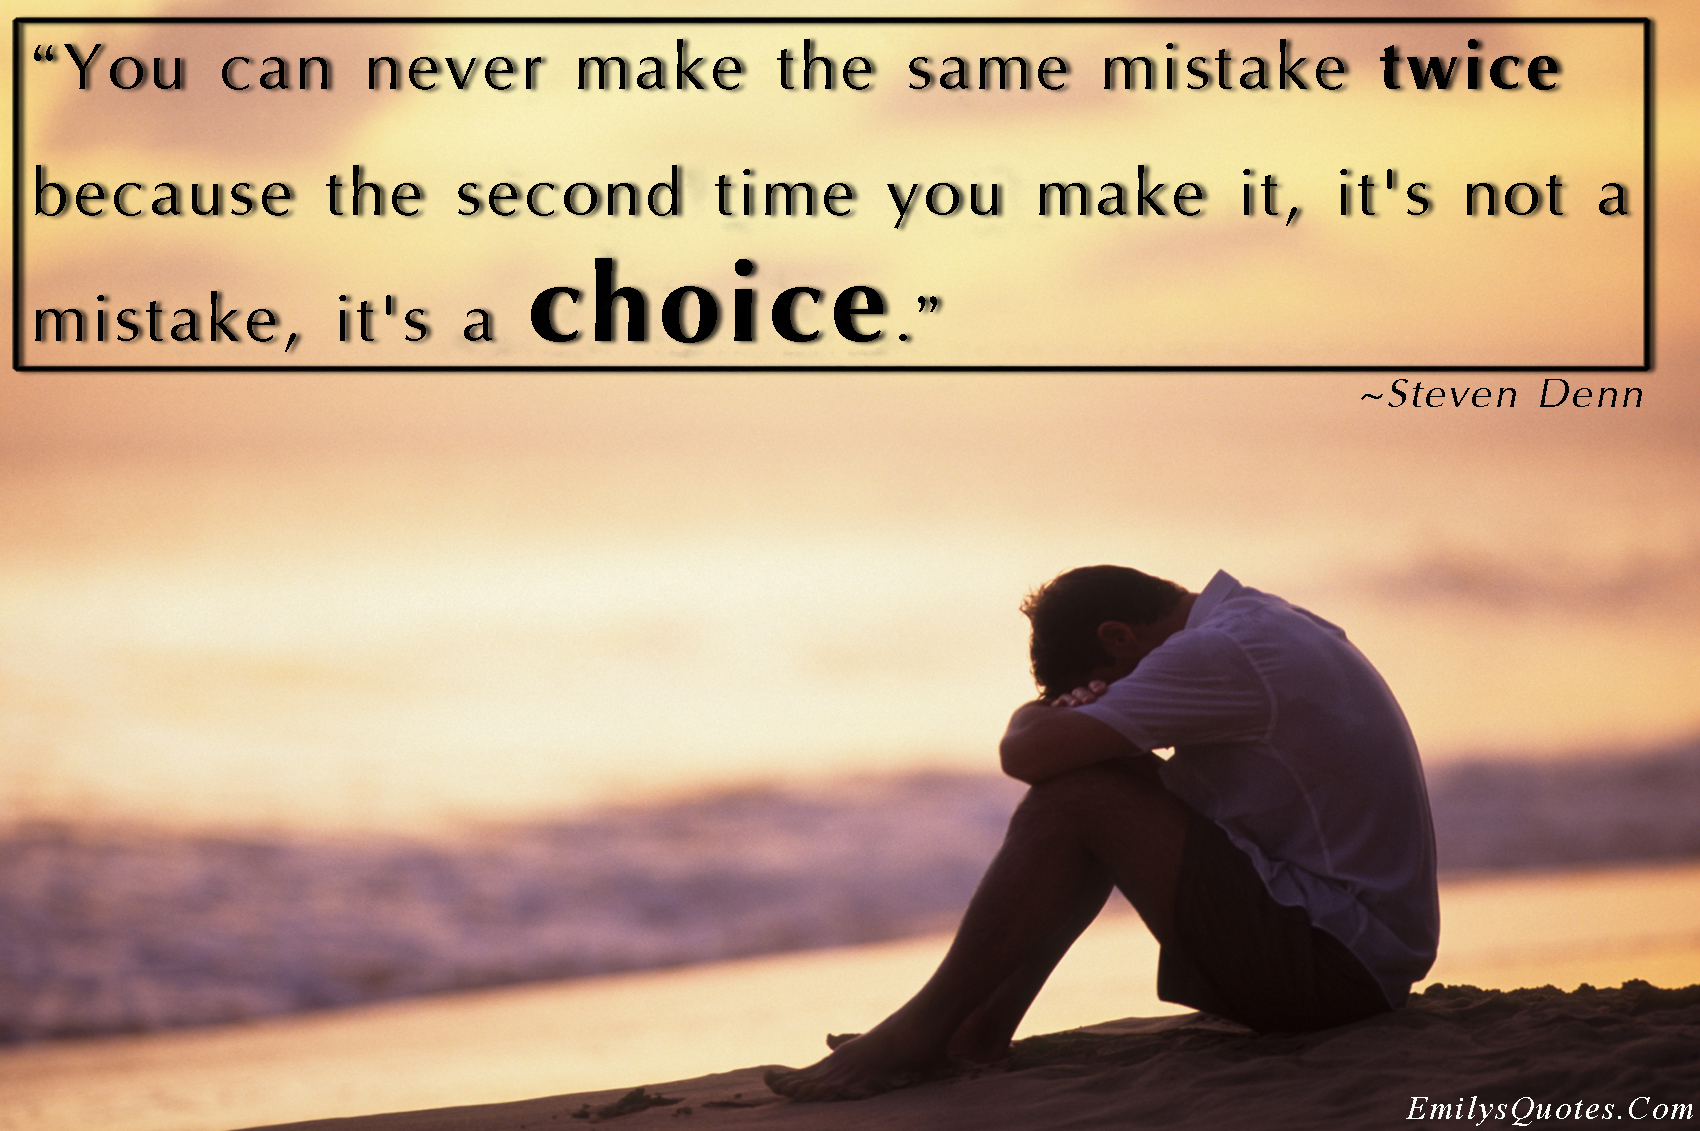 Making The Same Mistake Twice Quotes: Relationship Mistakes Quotes. QuotesGram